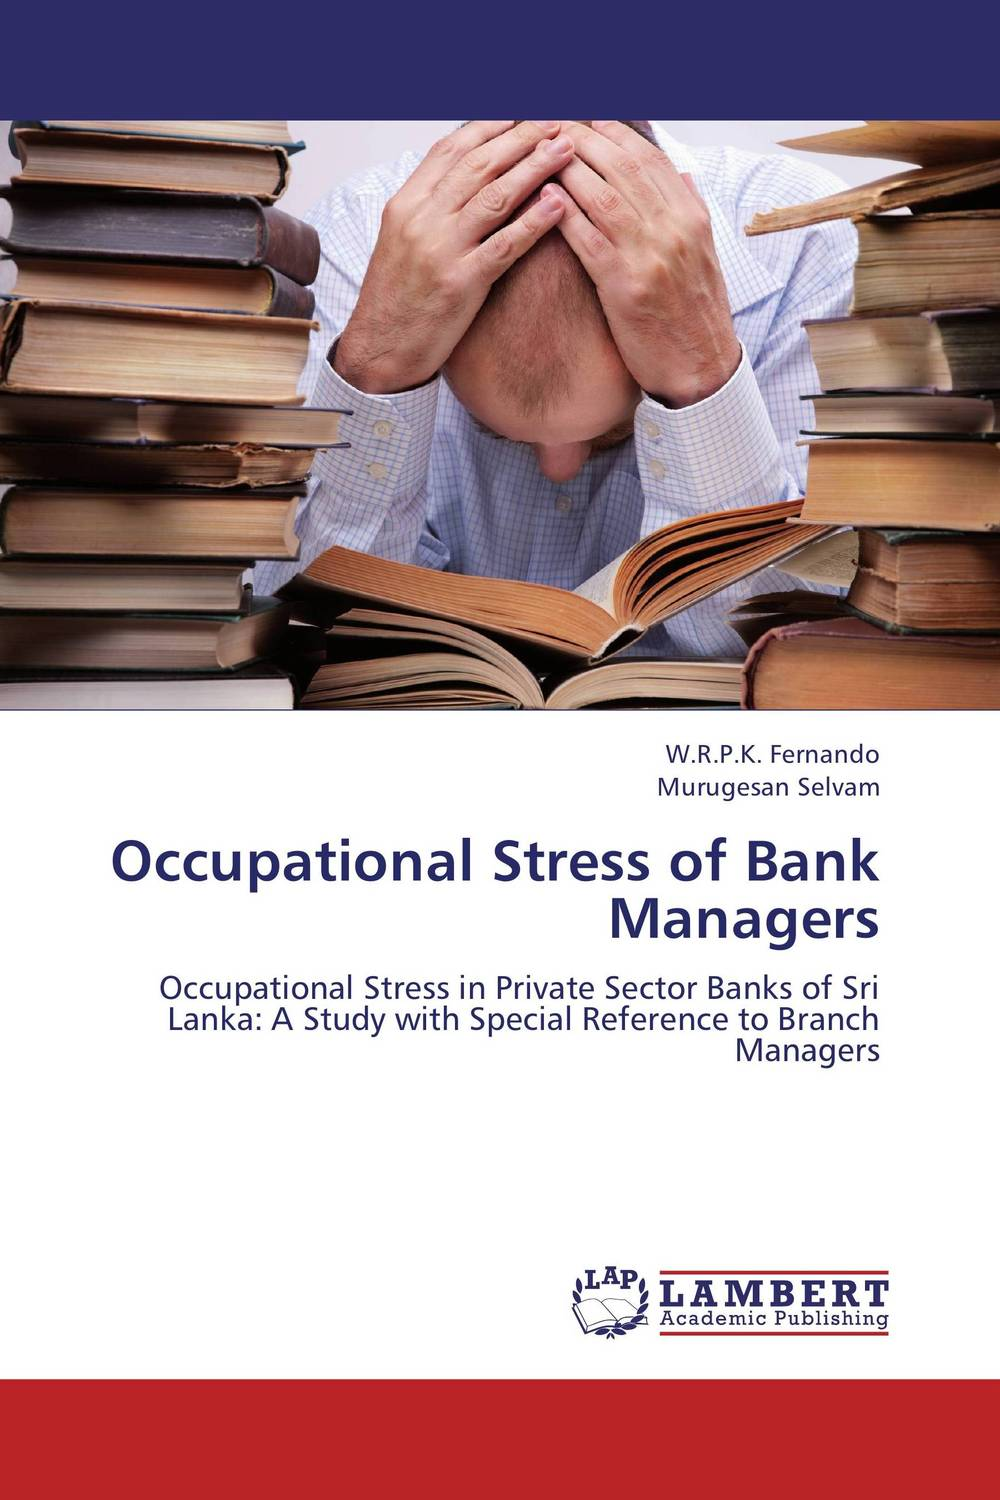 Occupational Stress of Bank Managers dr ripudaman singh mrs arihant kaur bhalla and er indpreet kaur stress among bank employees